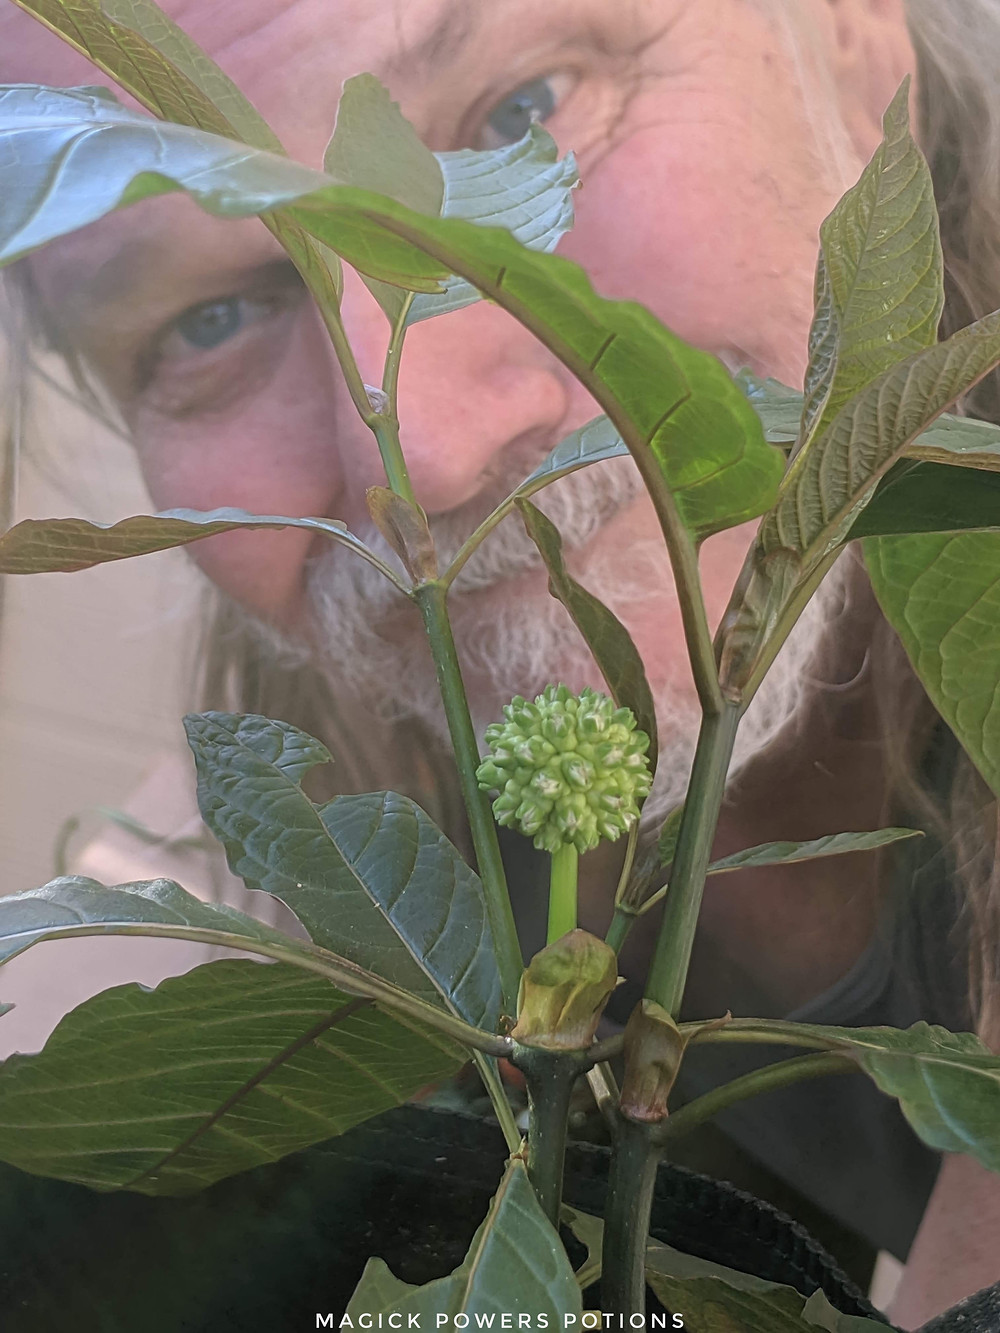 Glenn Bradford smiles as he peers through the leaves of his flowering kratom specimen. This photo was taken 6 weeks after the arrival of his plants and 5 months following the date of the initial seed sowing.